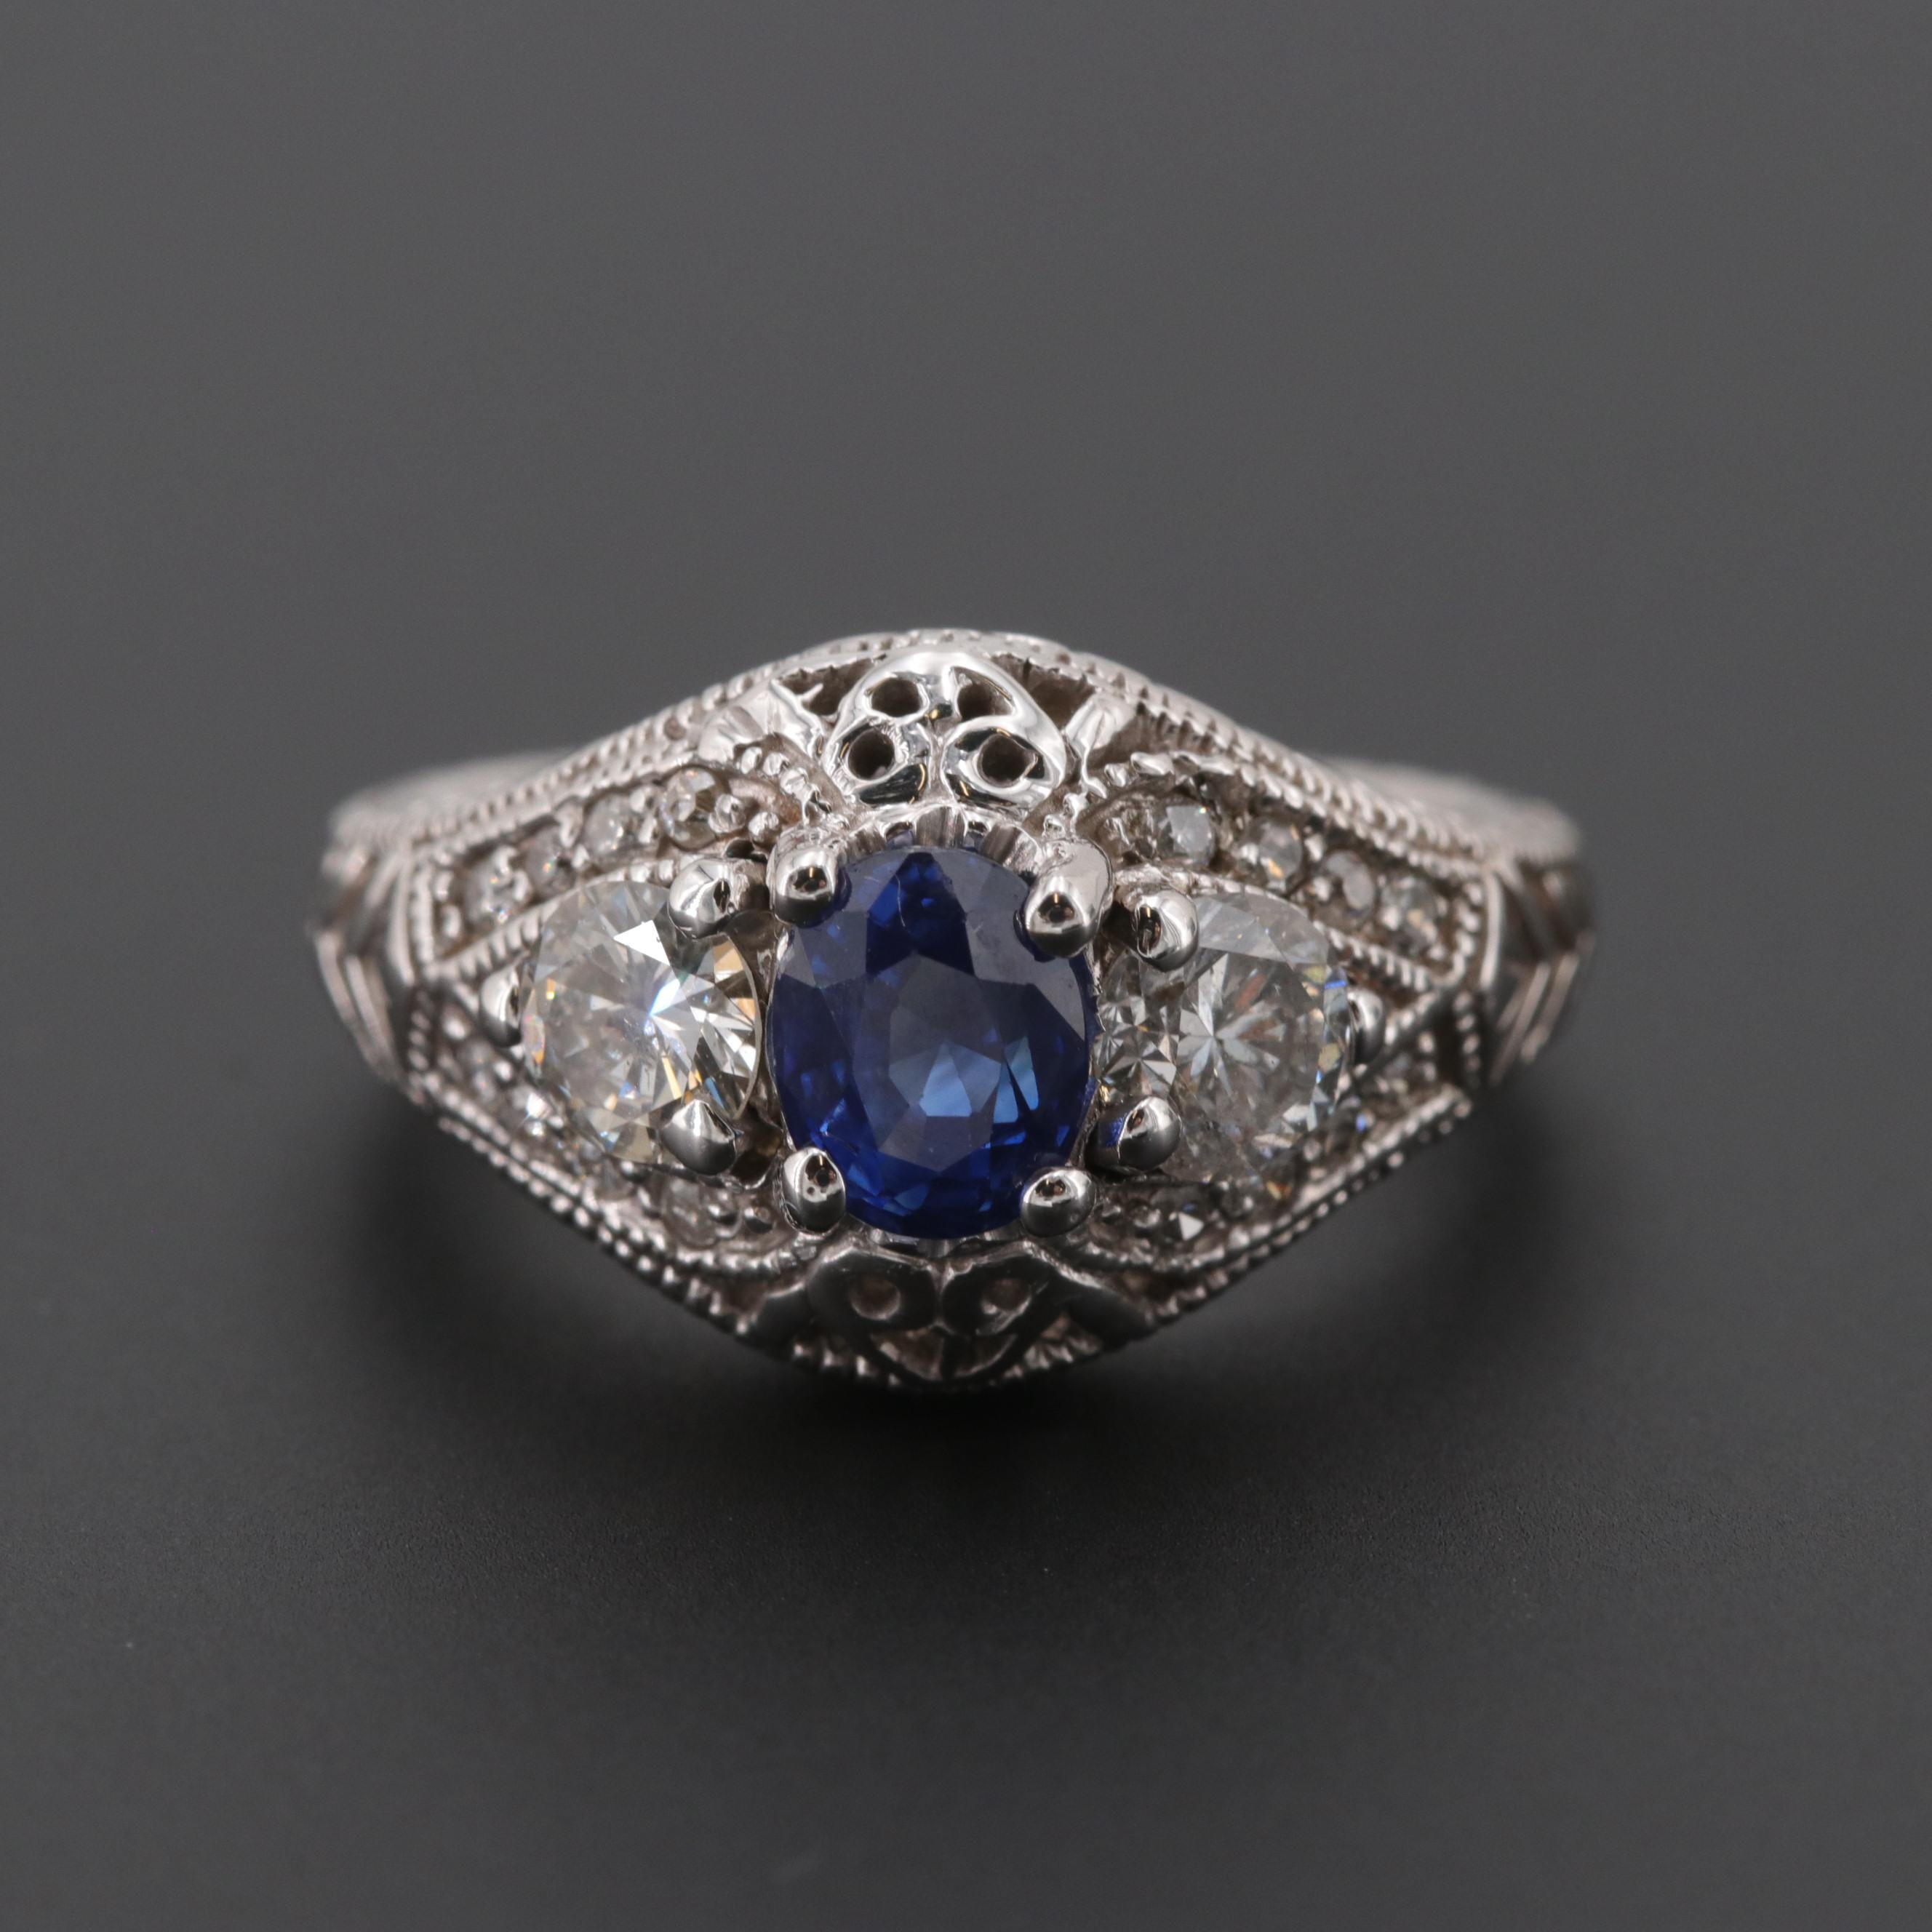 14K White Gold 1.01 CT Sapphire and Diamond Ring with GIA Report